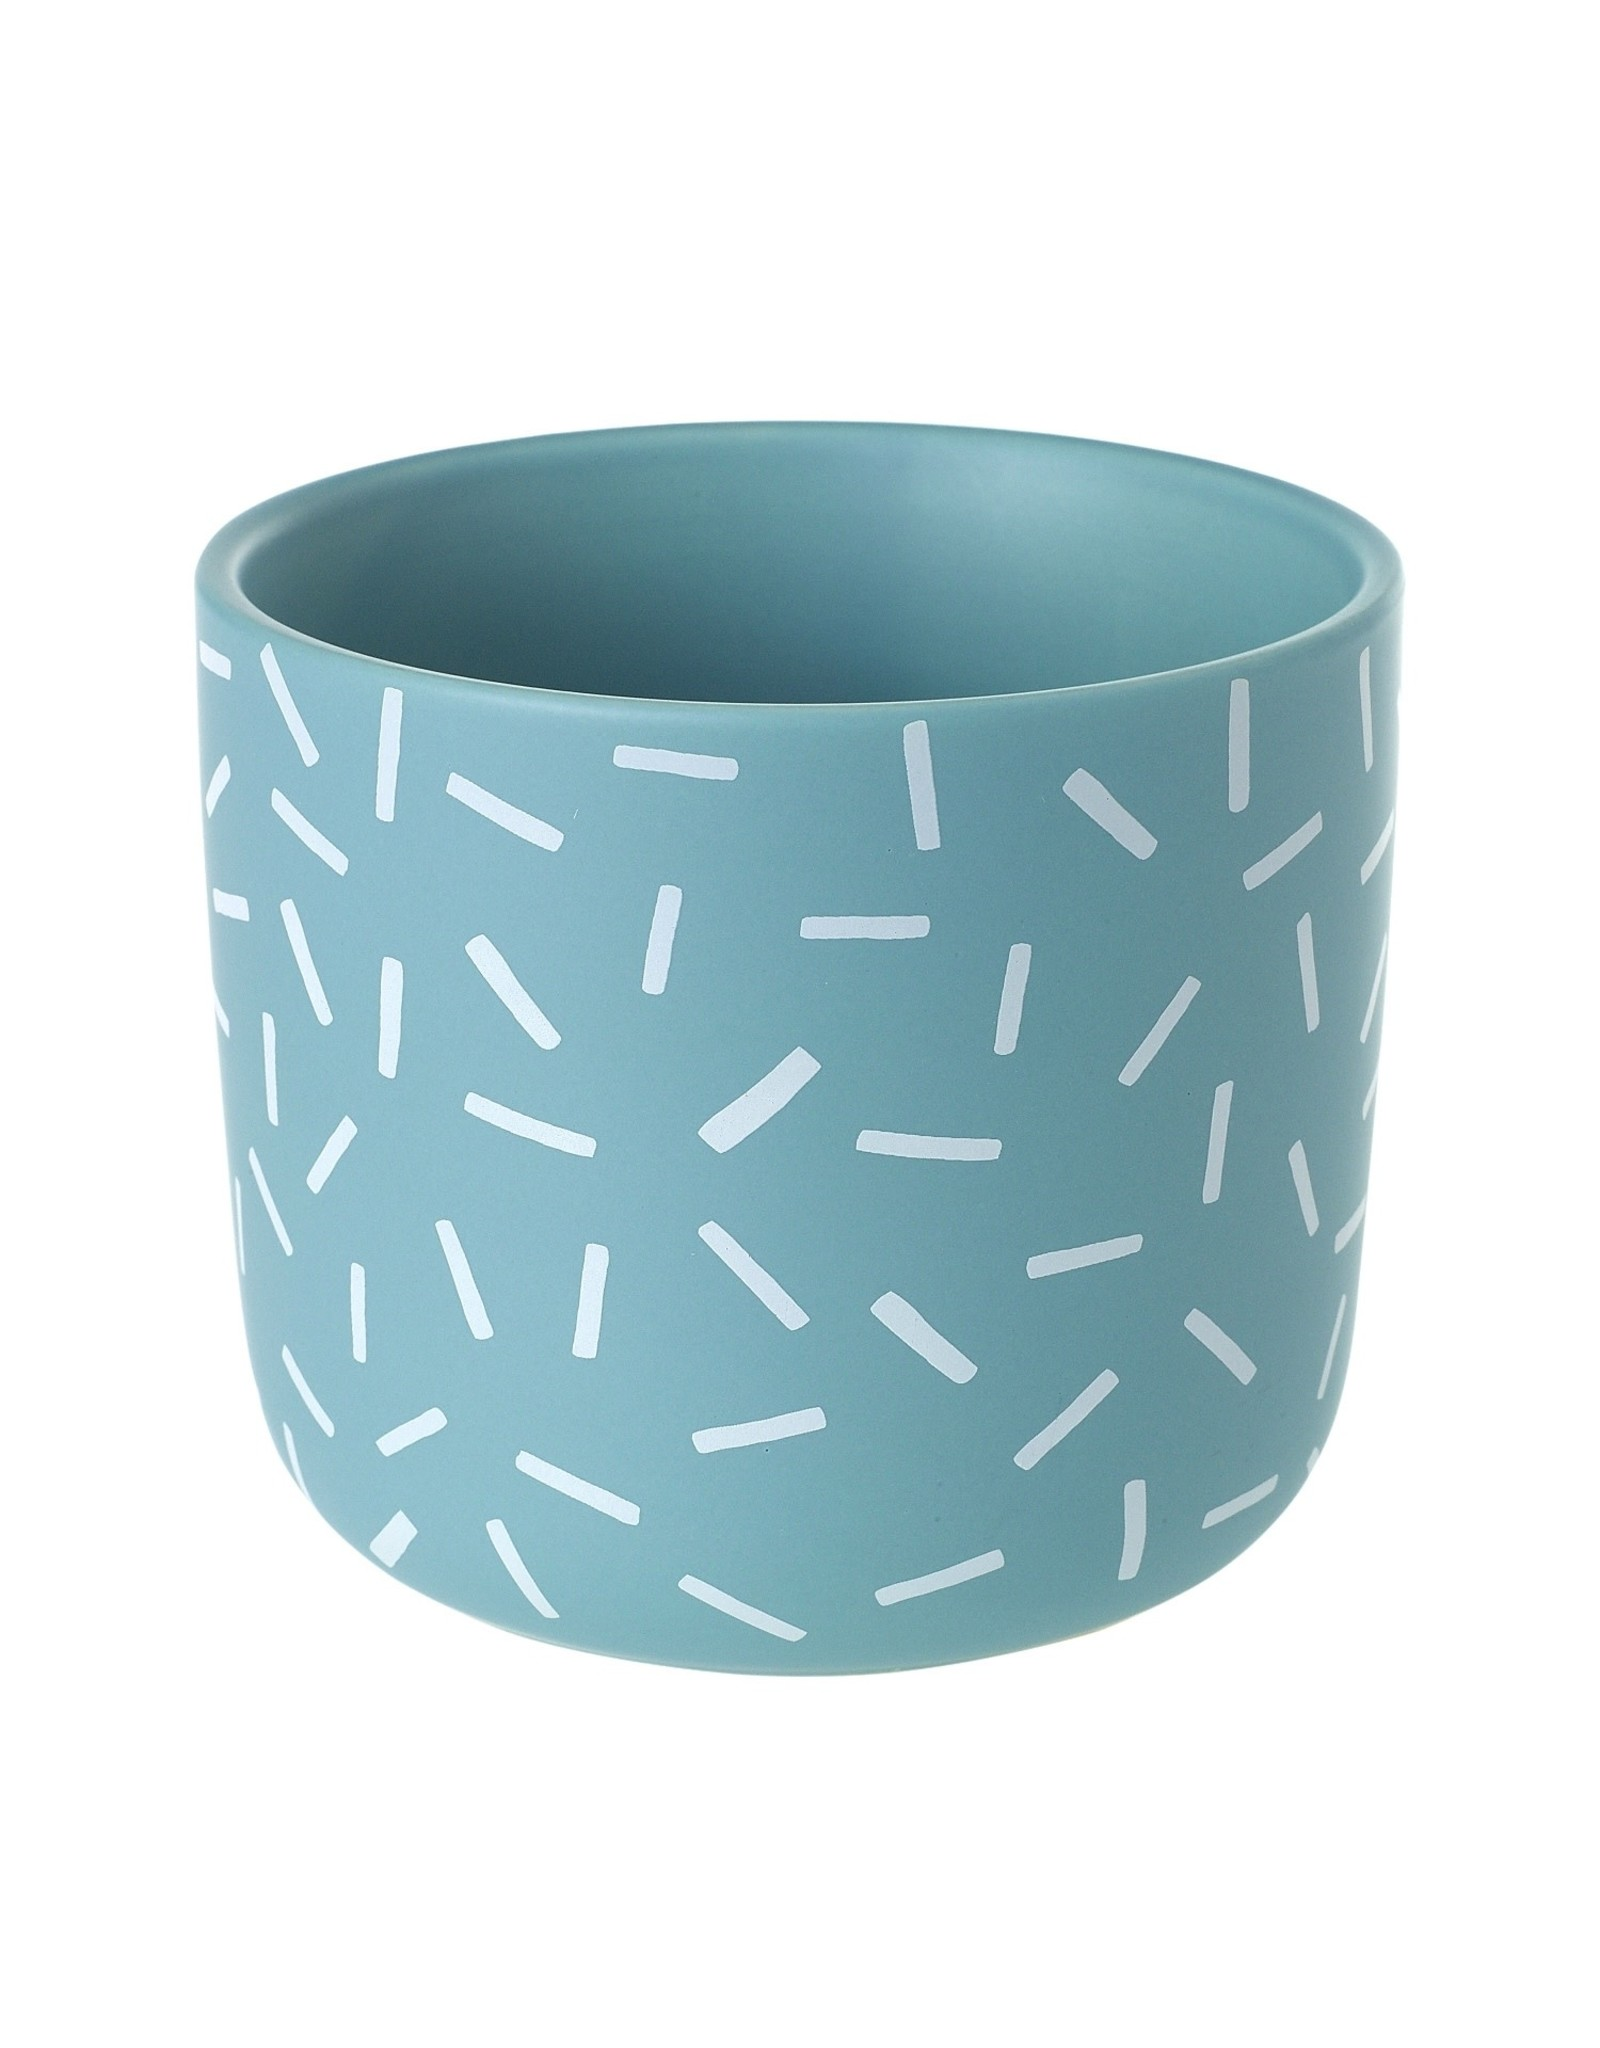 Sprinkle Pot in Teal